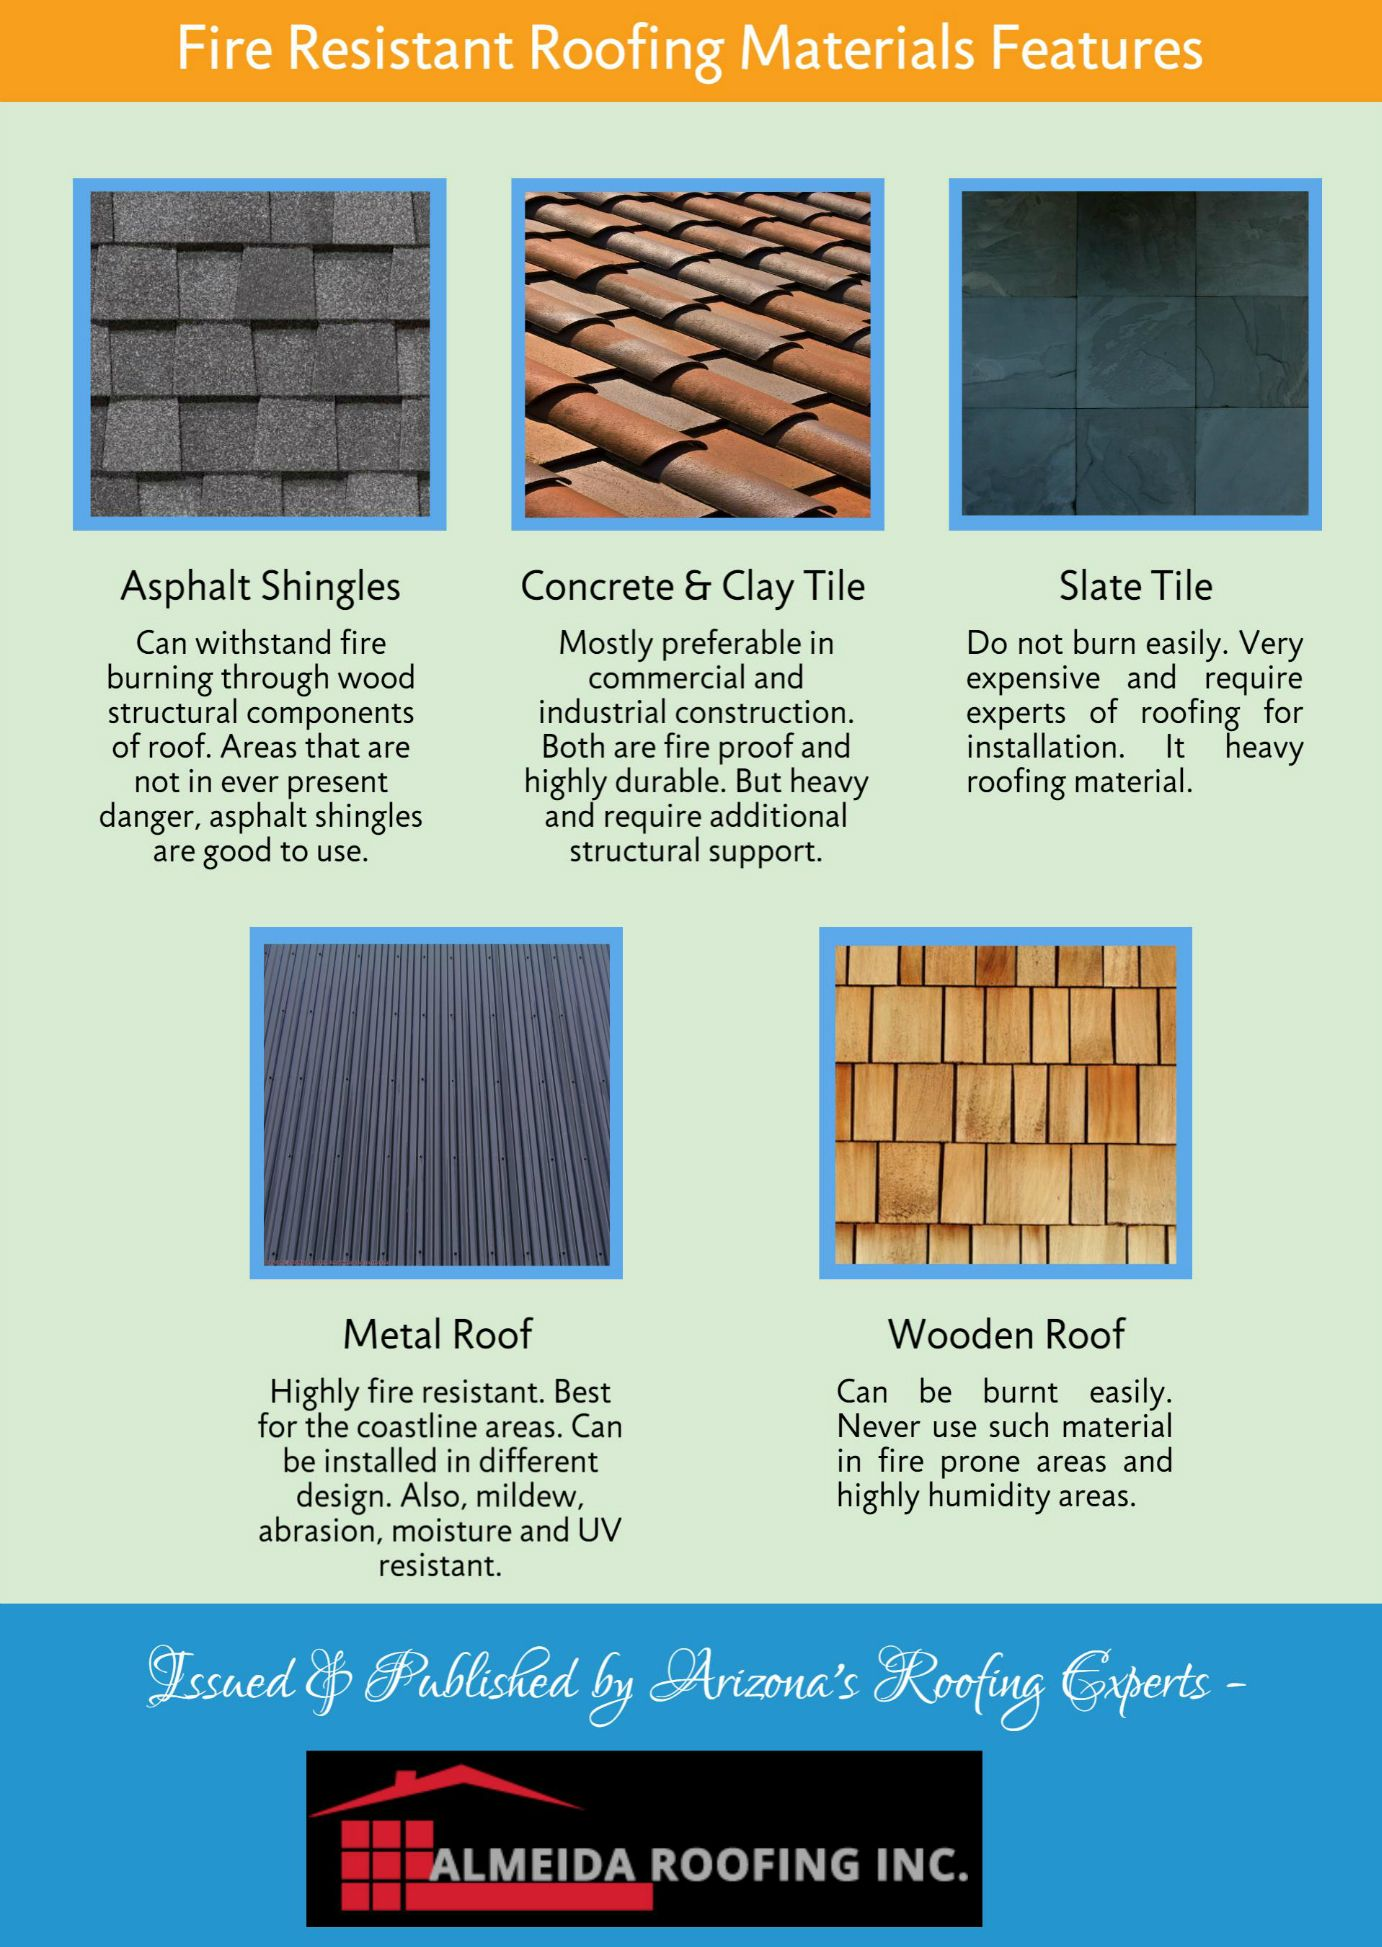 Have A Look At The Features Of Fire Resistant Roofing Materials You Must Prefer Fire Resistant Roofing Materials To Pr Roofing Materials Roofing Fire Damage